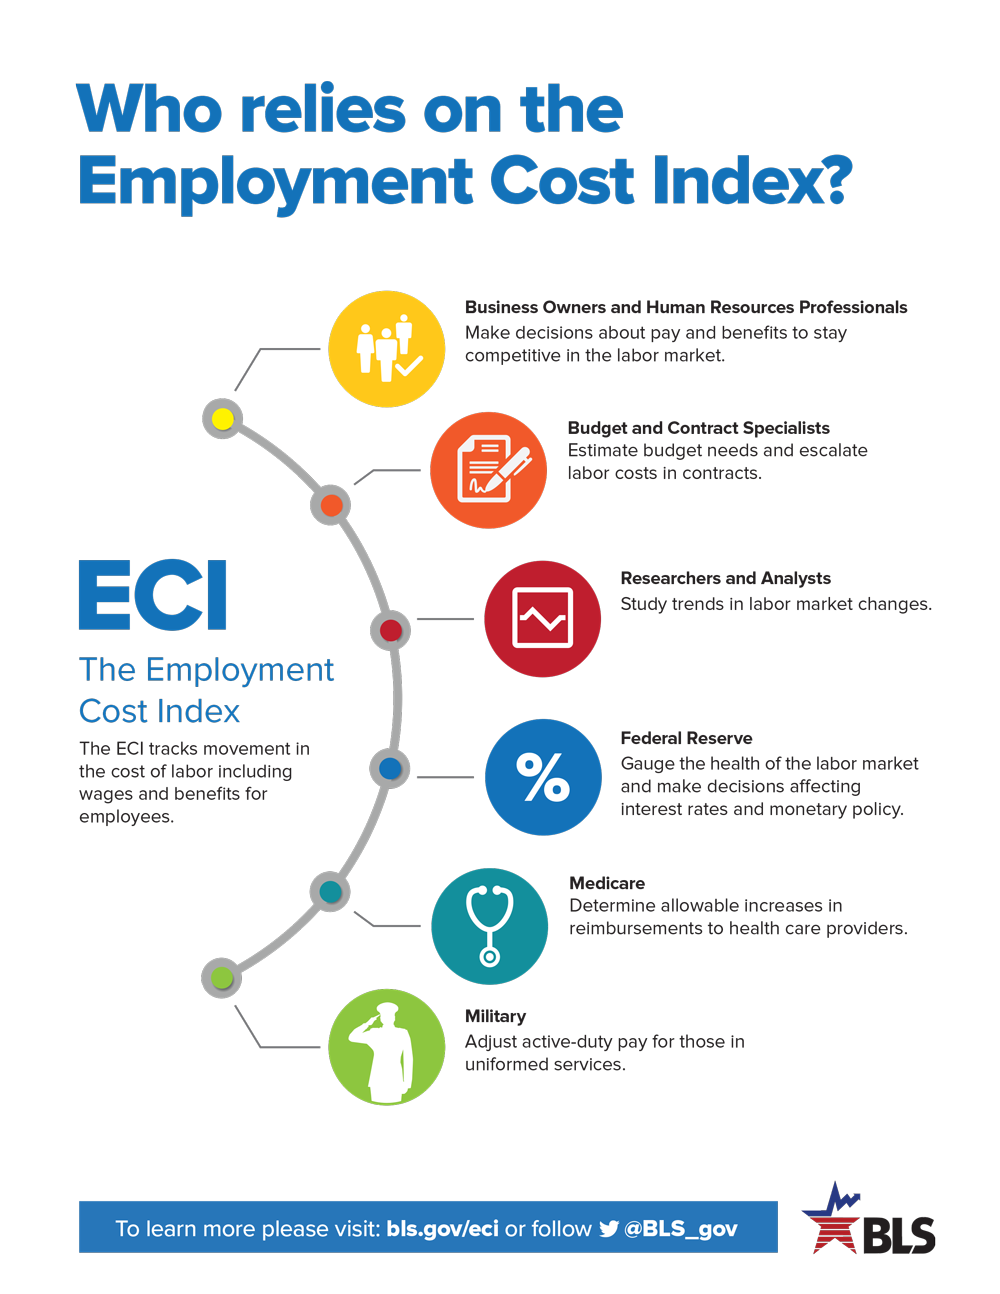 Who relies on the Employment Cost Index